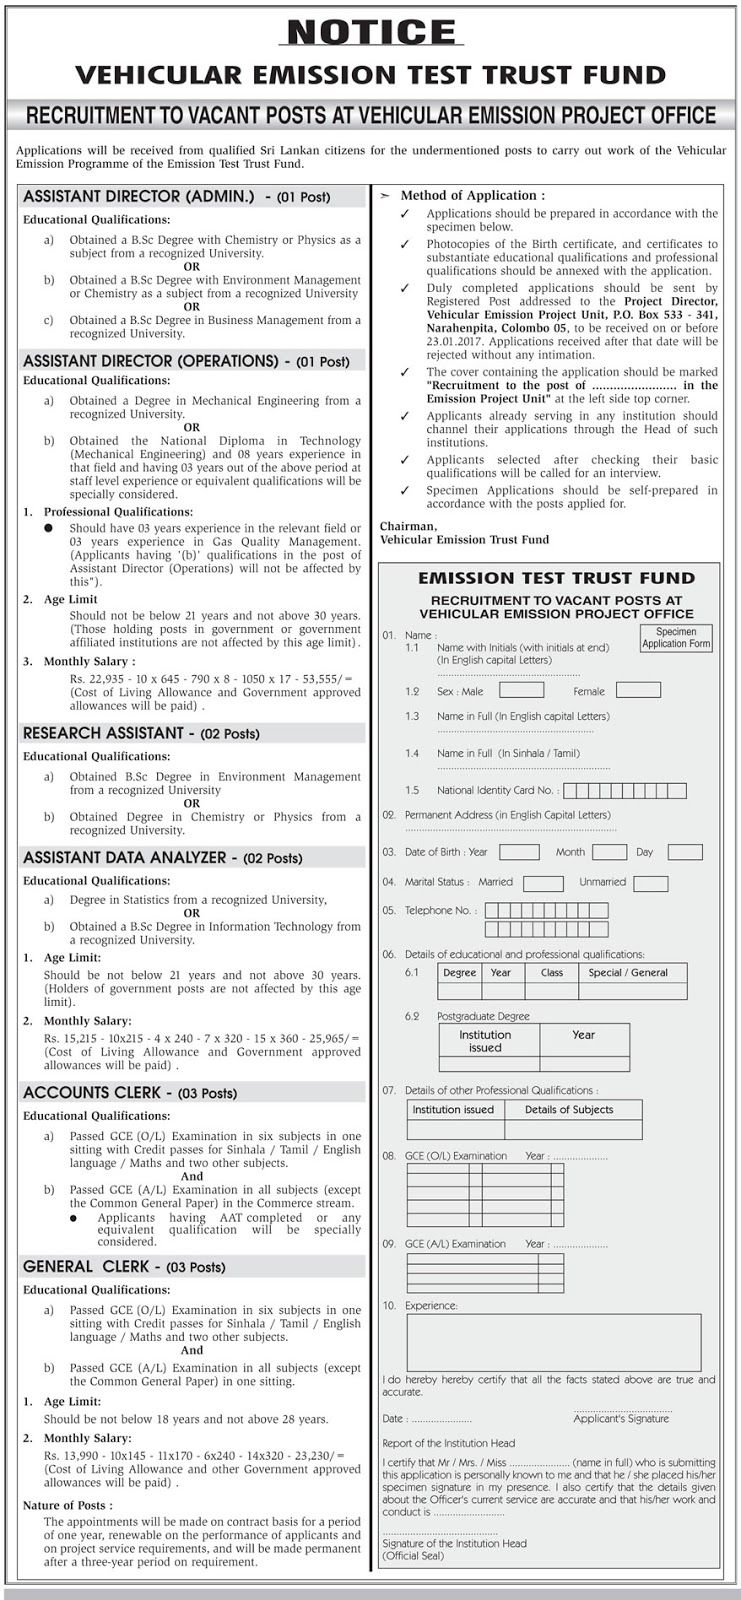 Sri Lankan Government Job Vacancies At Vehicular Emission Test